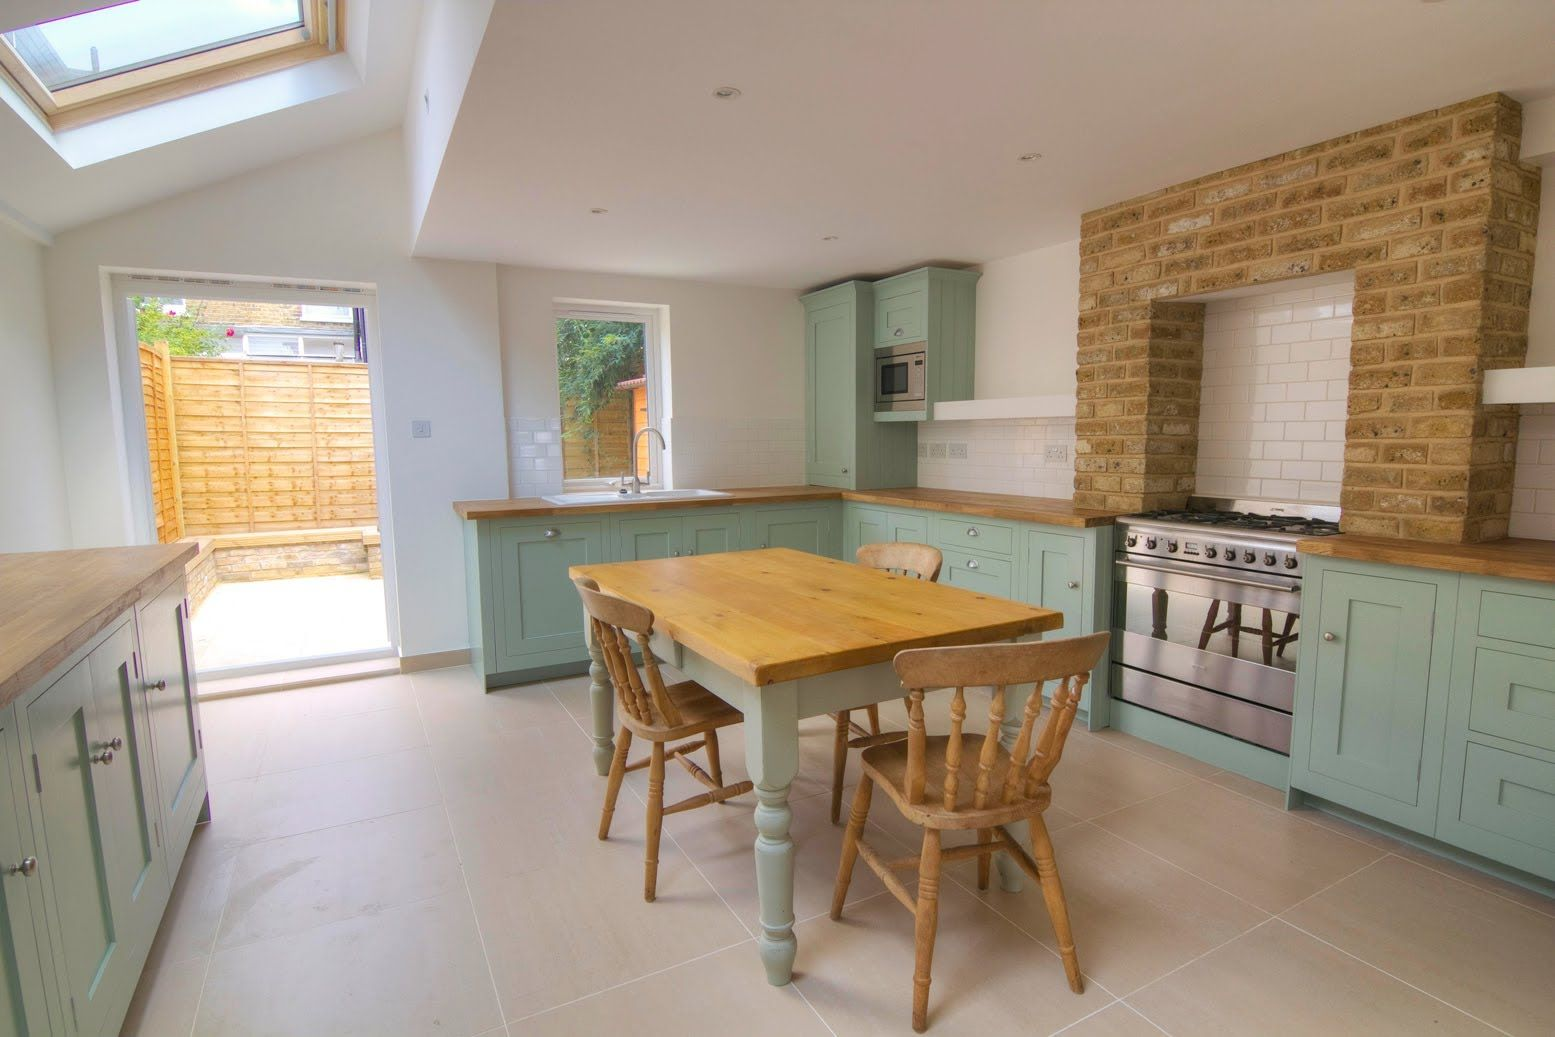 Kitchen Extension London We Specialize In The Design And Delivery Of Kitchen  Extension And Work With